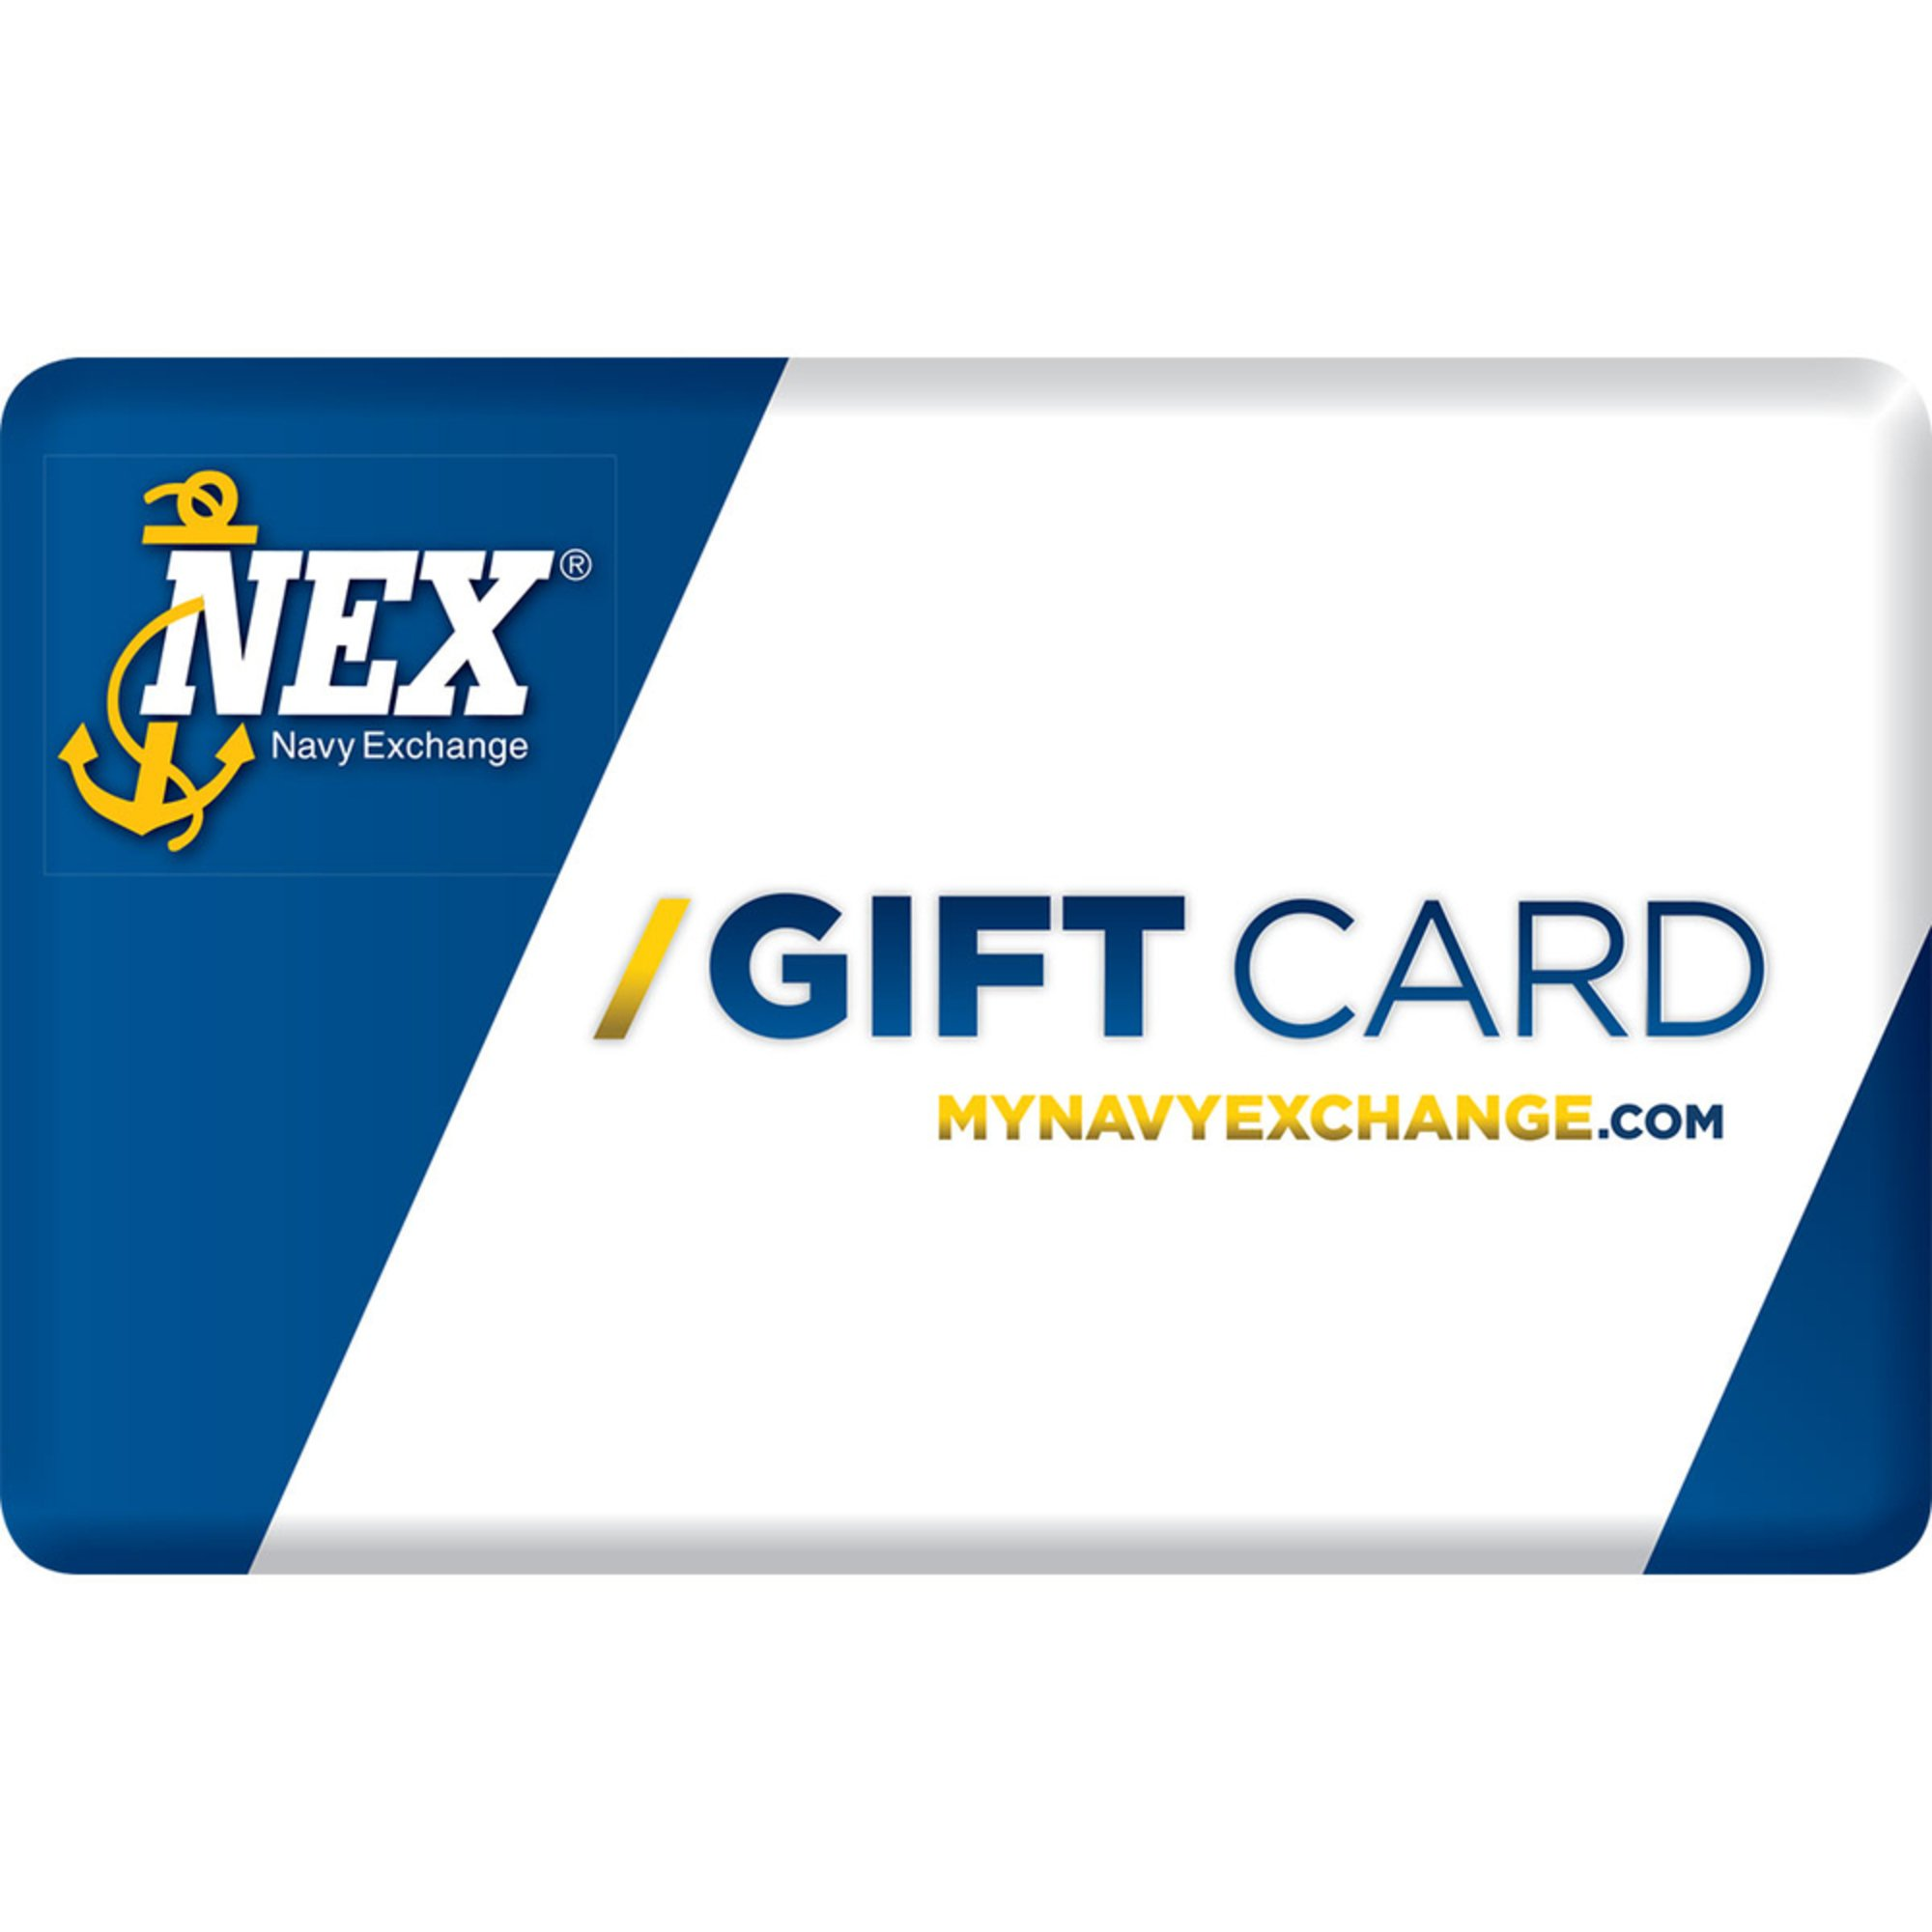 Be sure to keep your Visa Gift card—even after the balance is depleted—in case you need to return any purchased items, as you may be asked to present the card to process the return. If the store policy is to credit the card used, the value will be credited back to the card within three to seven days of the return.